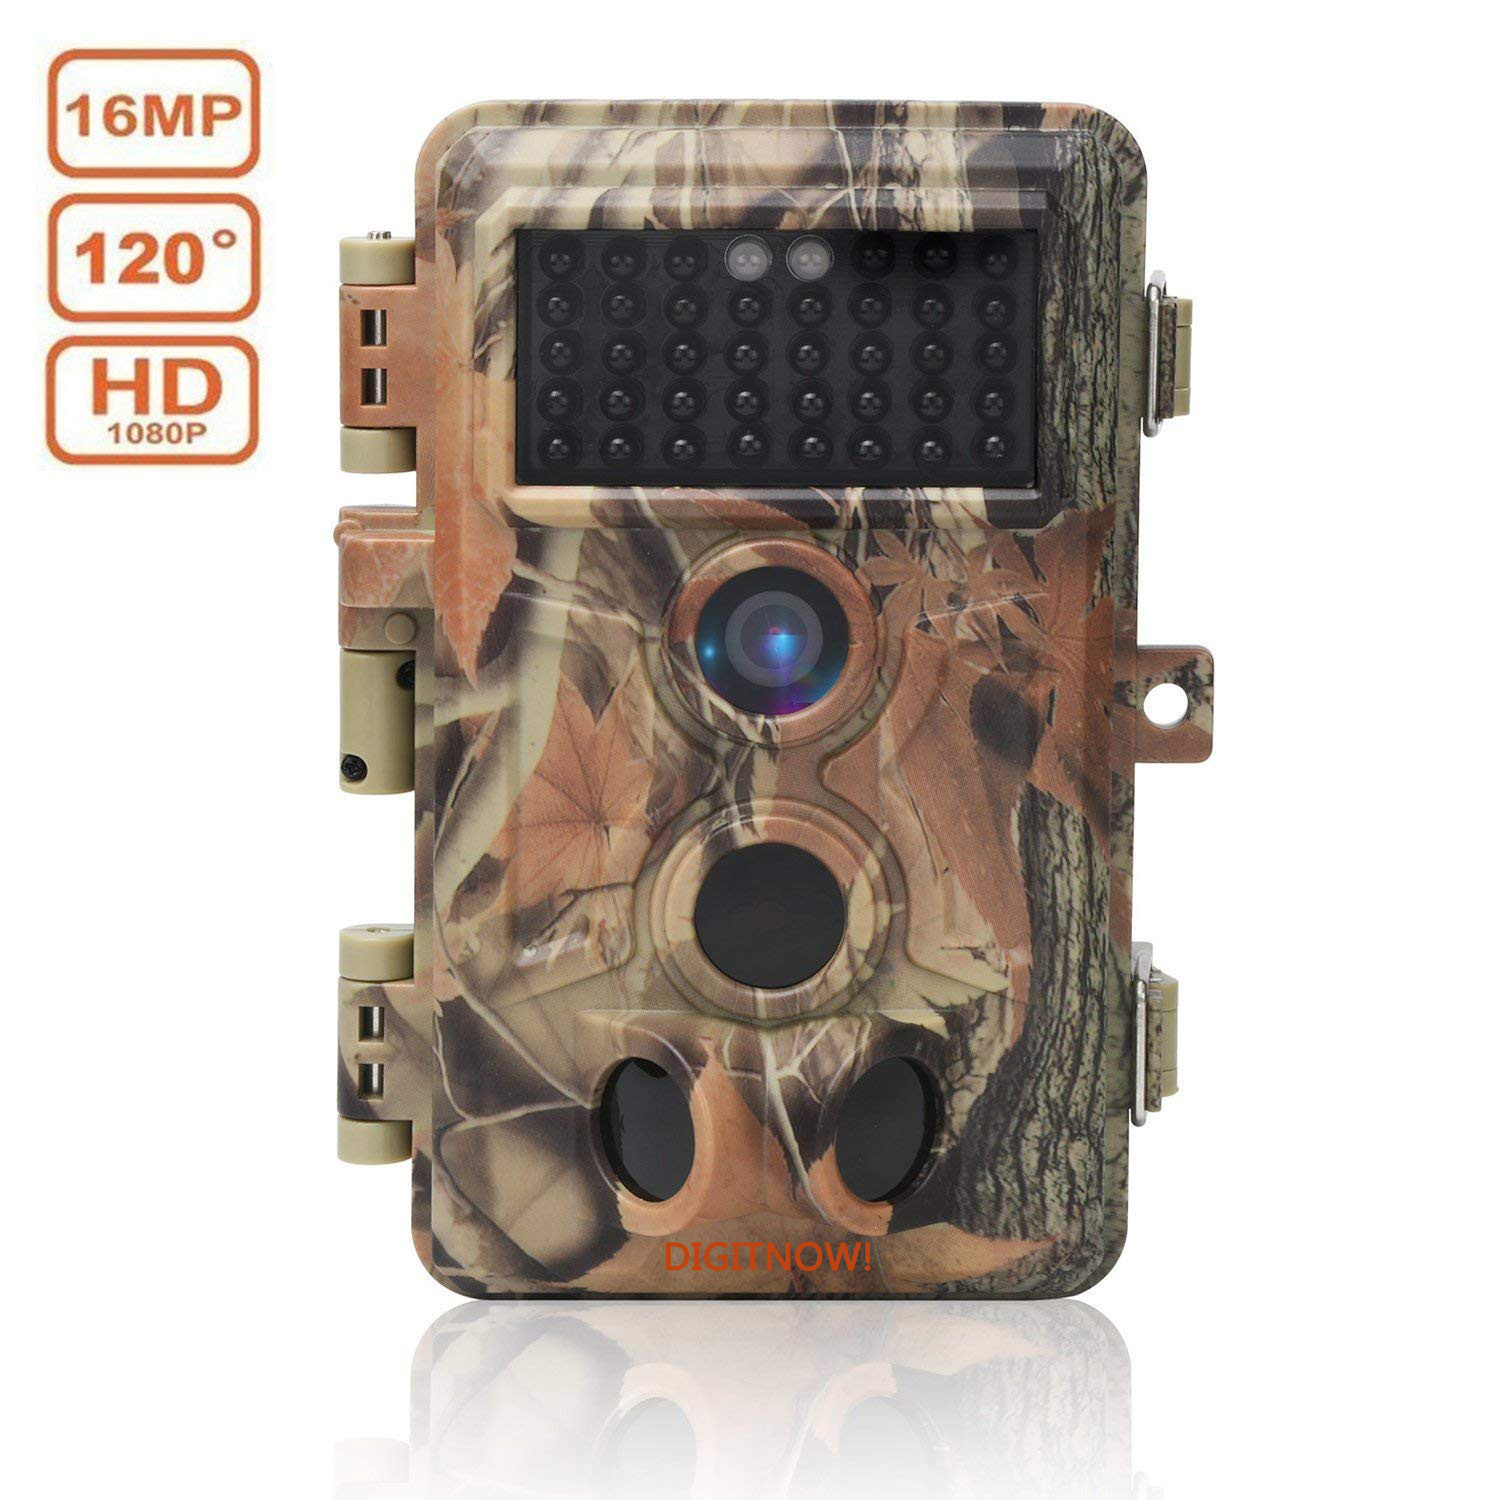 BR693, 16MP 1080P HD Waterproof Trail &Surveillance Digital Camera with Infrared Night Version up to 65ft in 2.4''LCD Screen &40pcs IR LEDs Wildlife Hunting &Scouting Camera